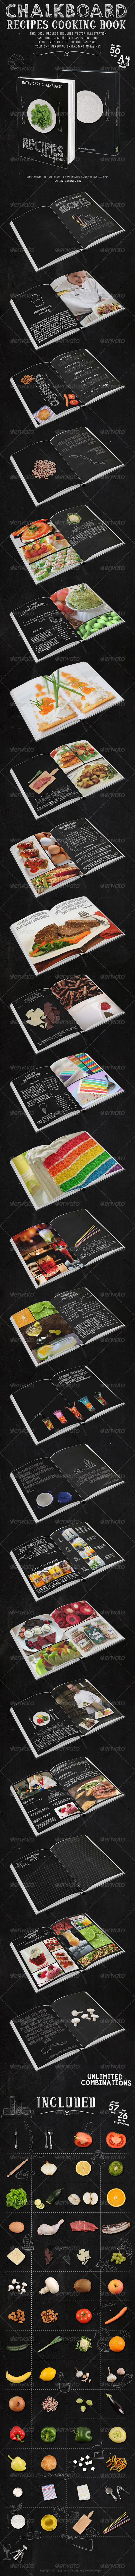 GraphicRiver Chalkboard Recipes Cooking Book 7811691